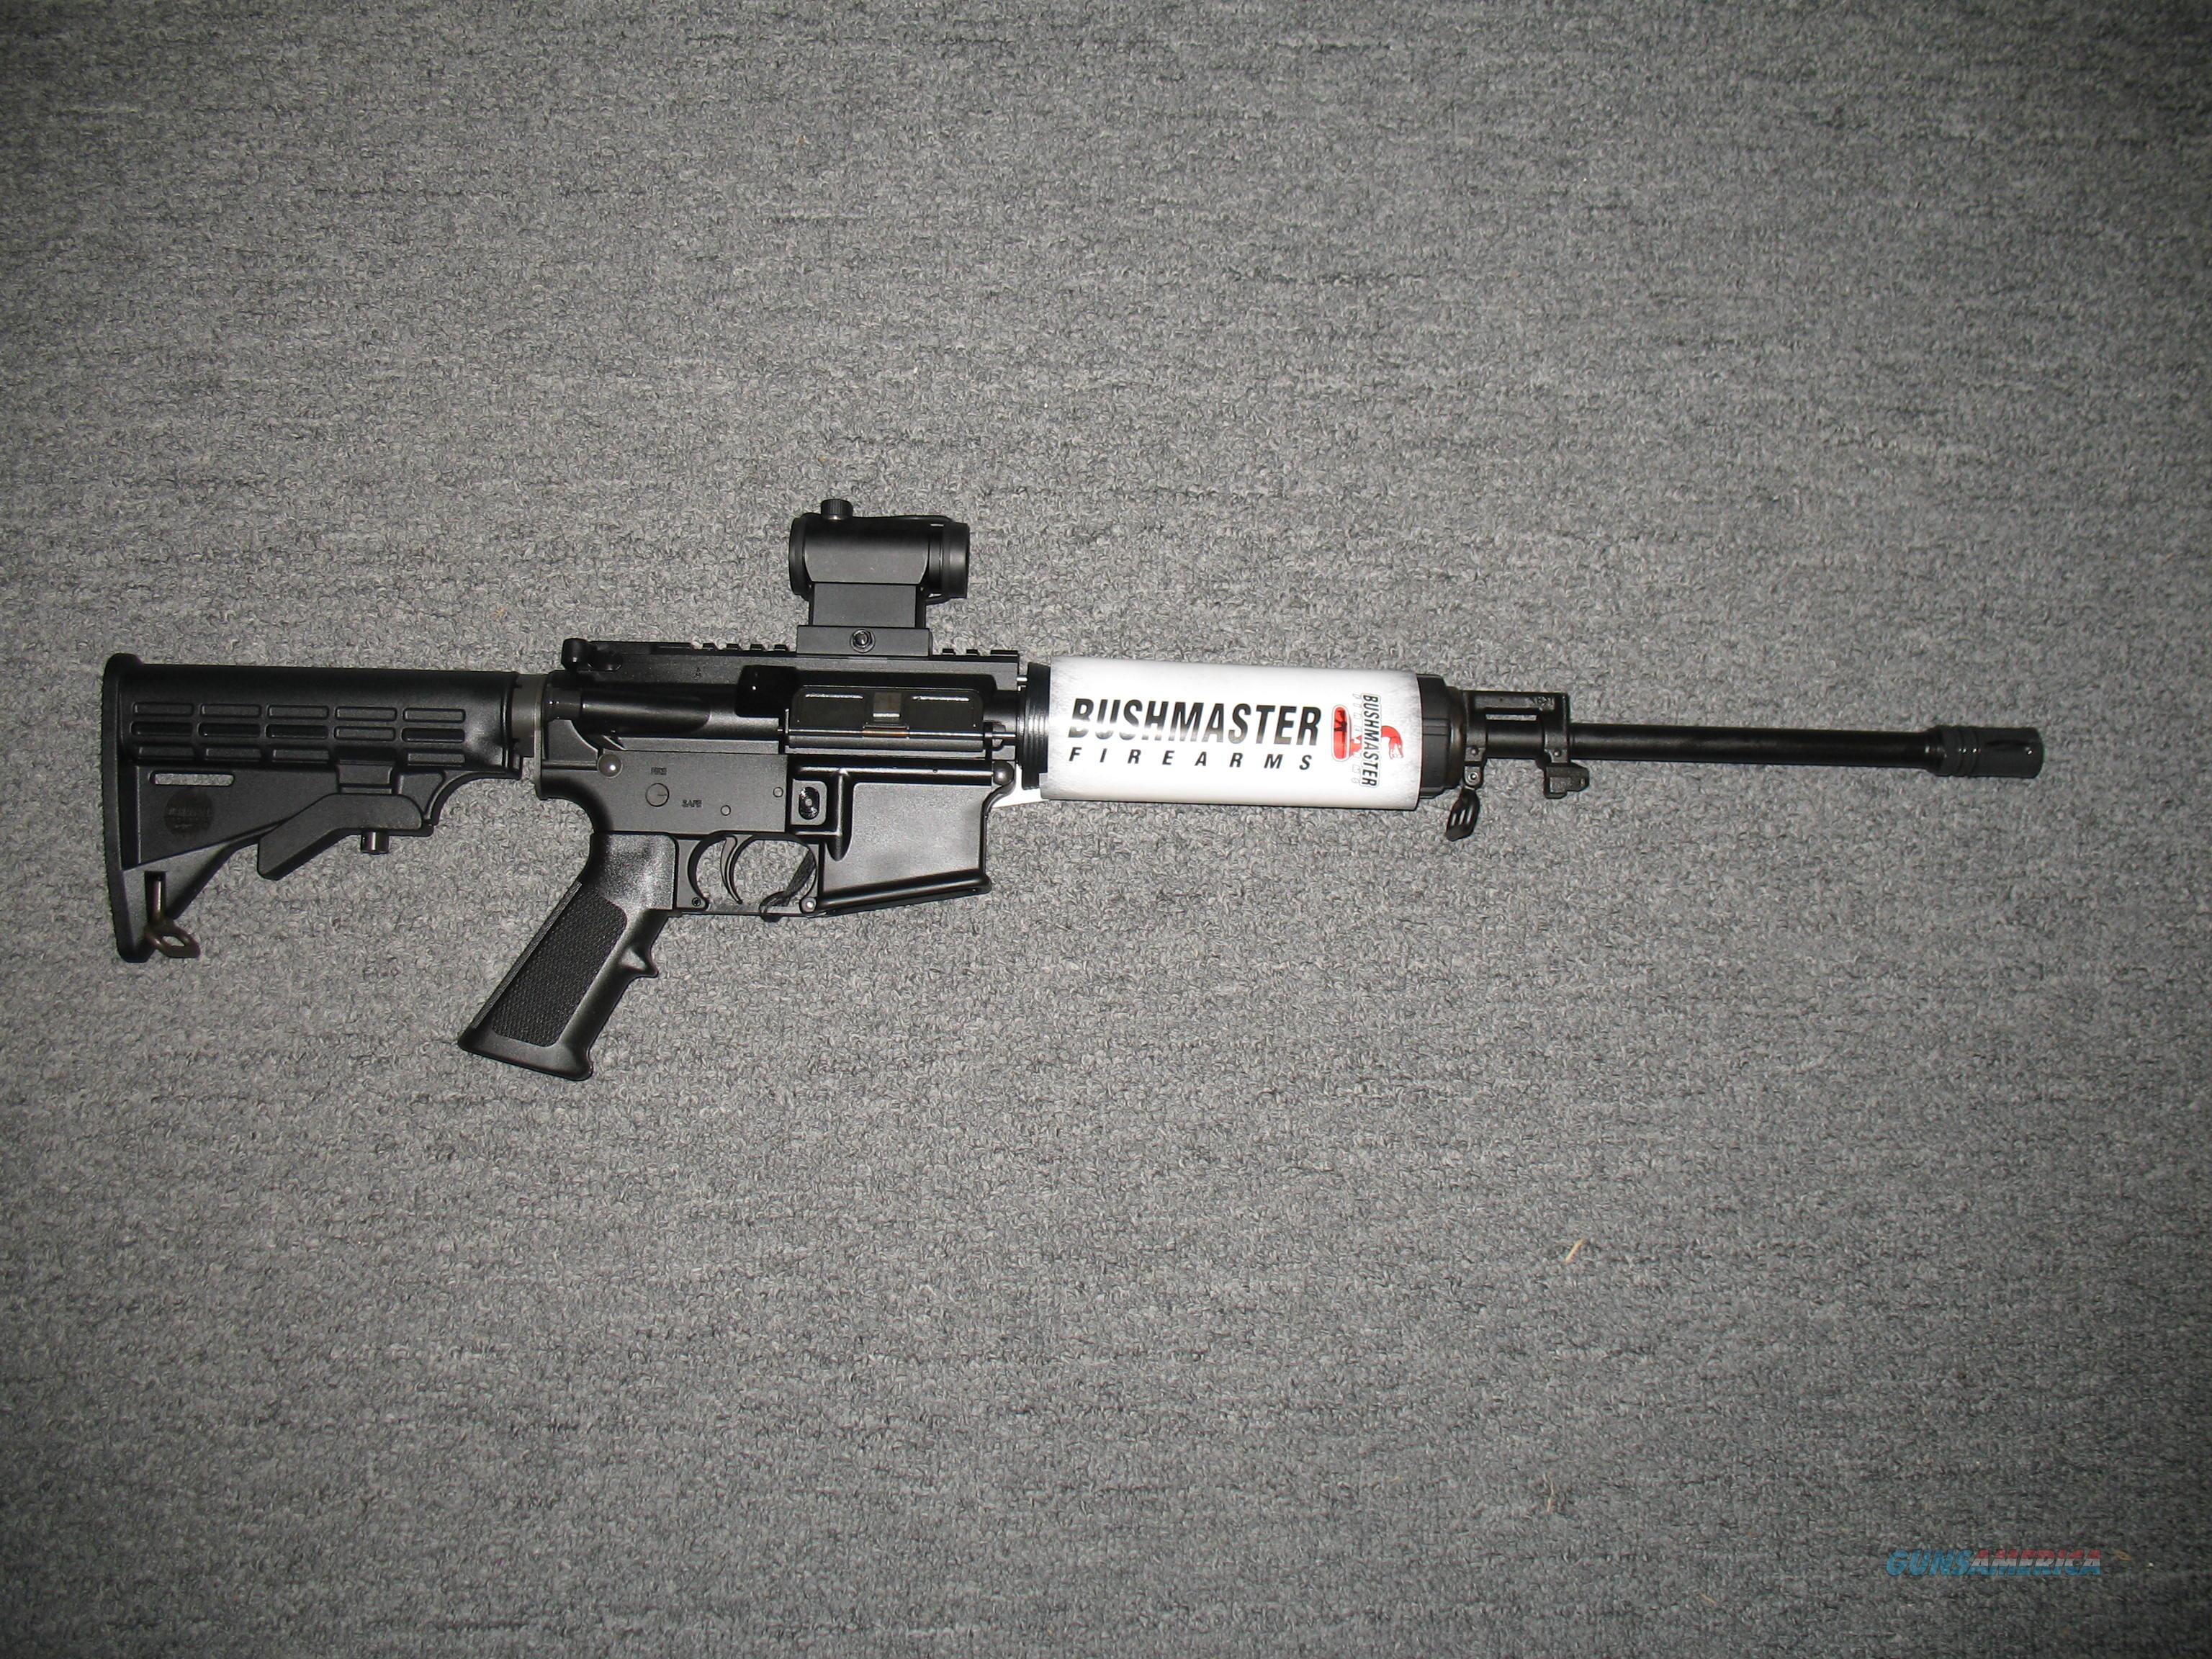 XM15-E2S with Red Dot optic  Guns > Rifles > Bushmaster Rifles > Complete Rifles